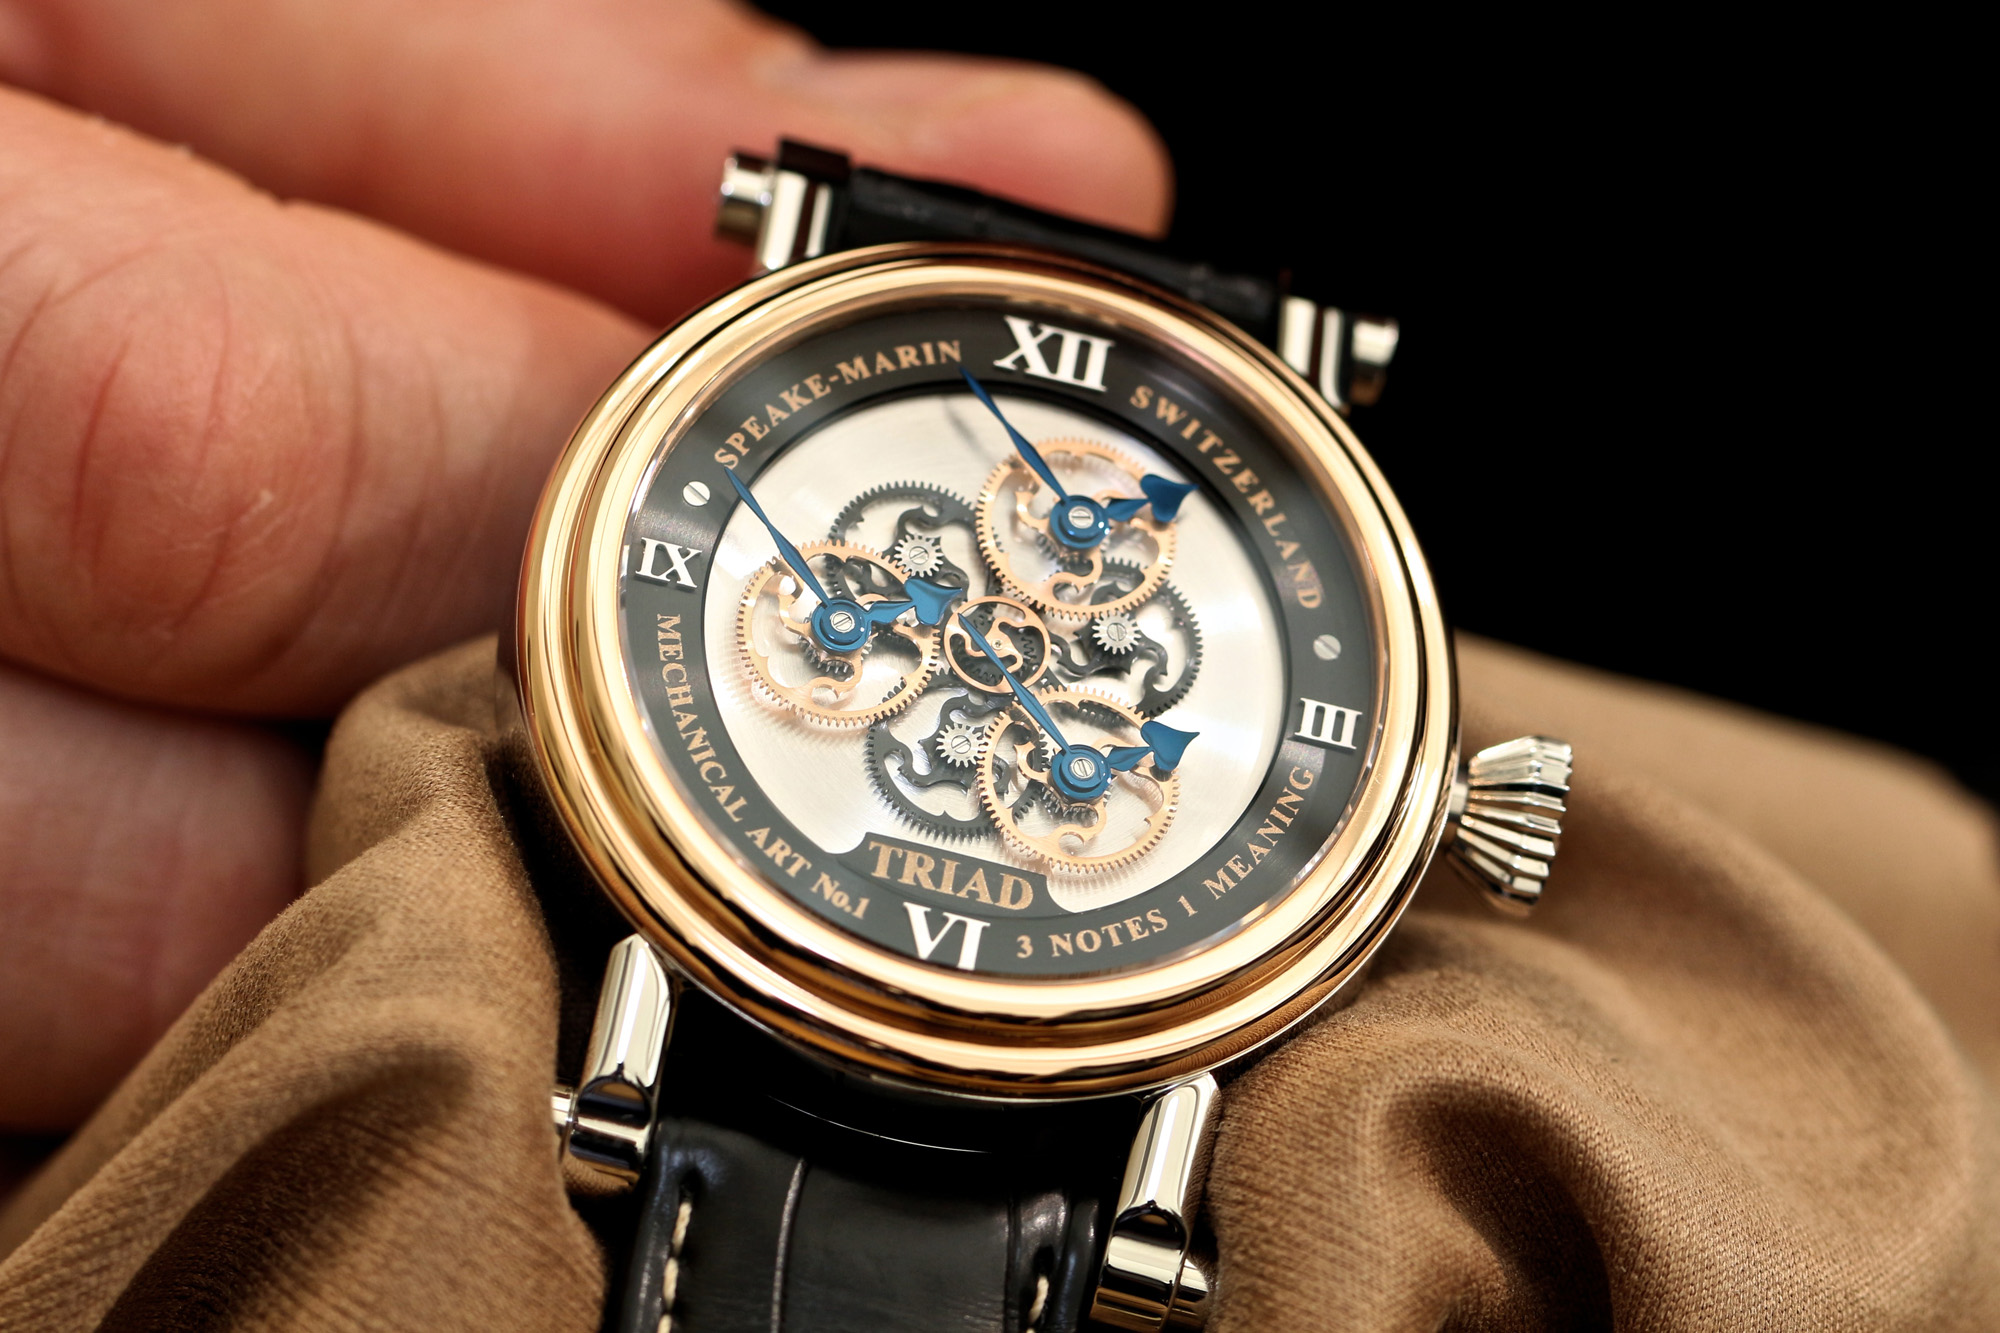 Speake-Marin Triad - Hands-On